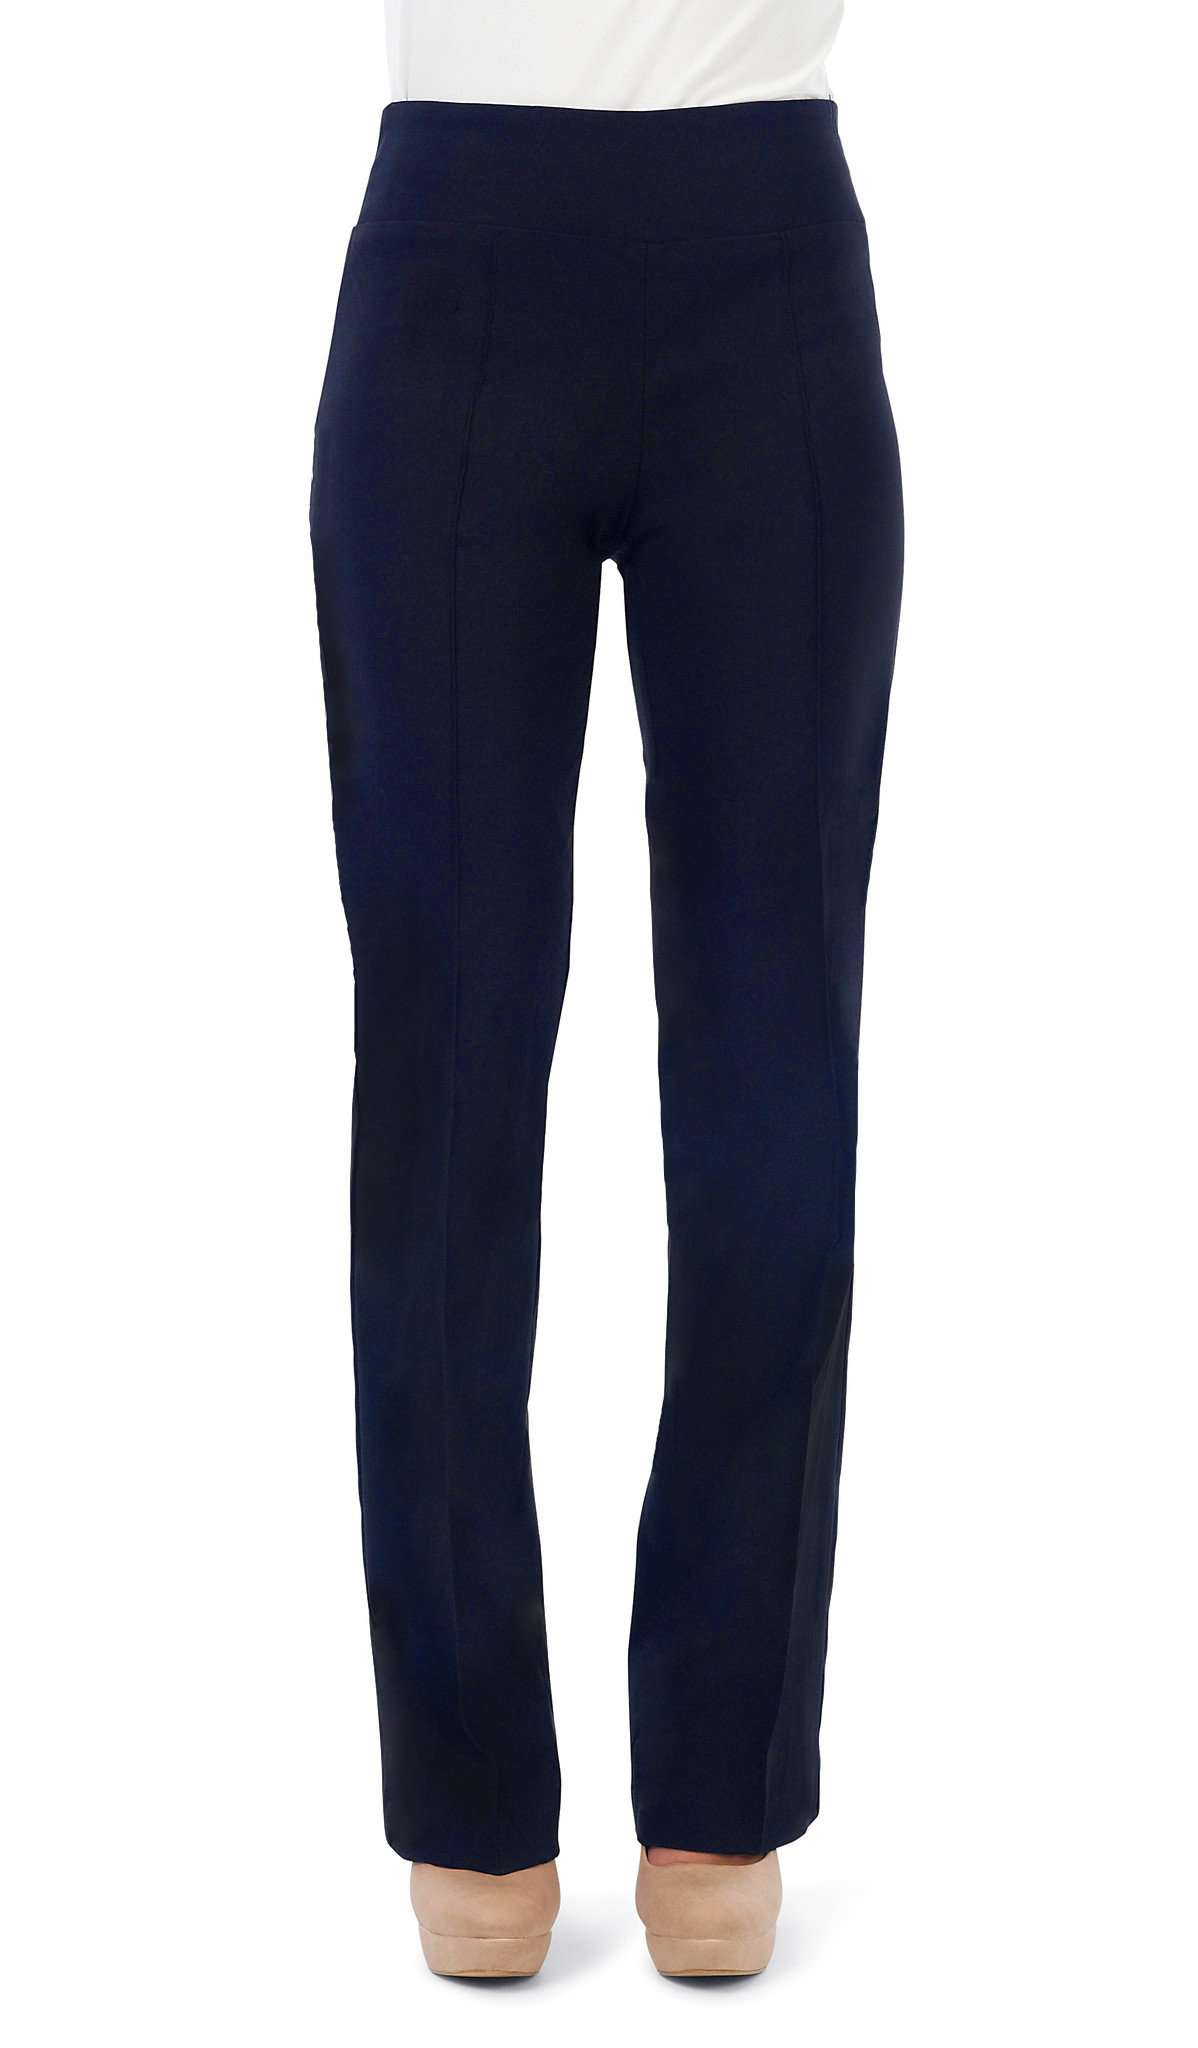 "Women's Navy Pant ""Miracle Fit"" Stretch Pant -Made In Canada - Yvonne Marie - Yvonne Marie"